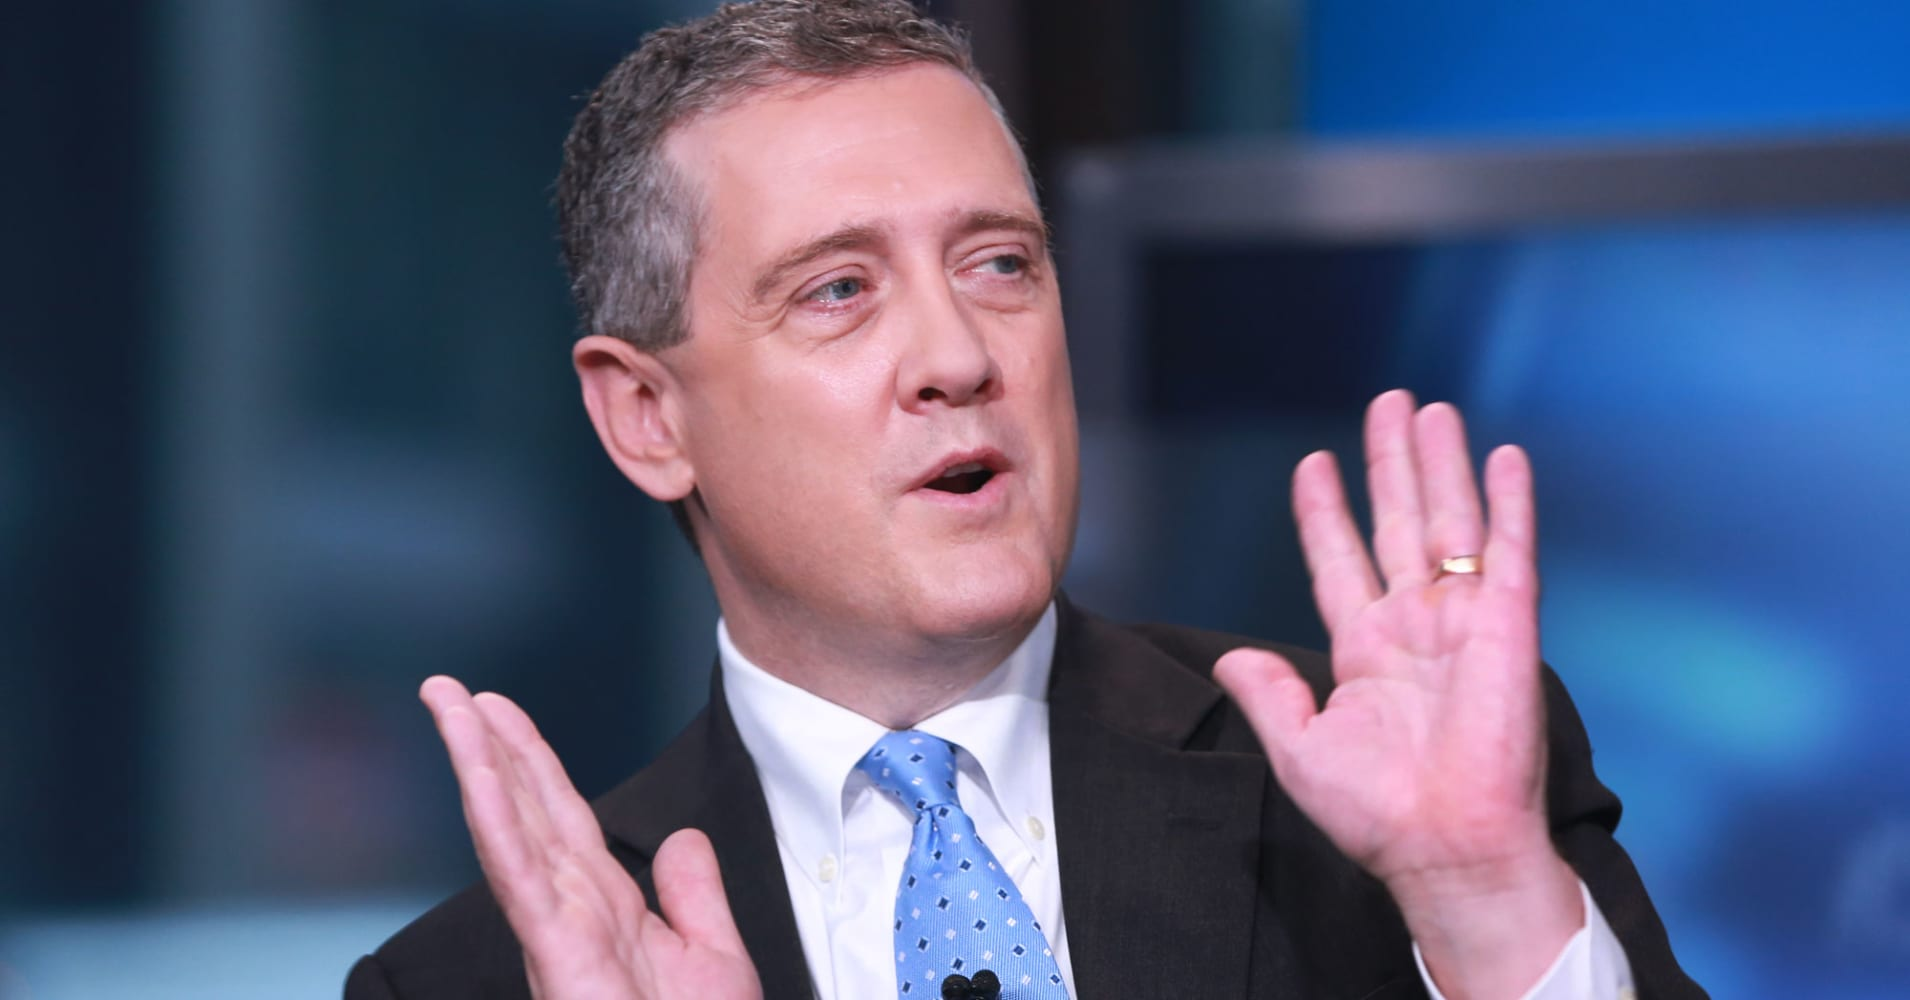 Hold off on further rate hikes until inflation moves: Fed's Bullard